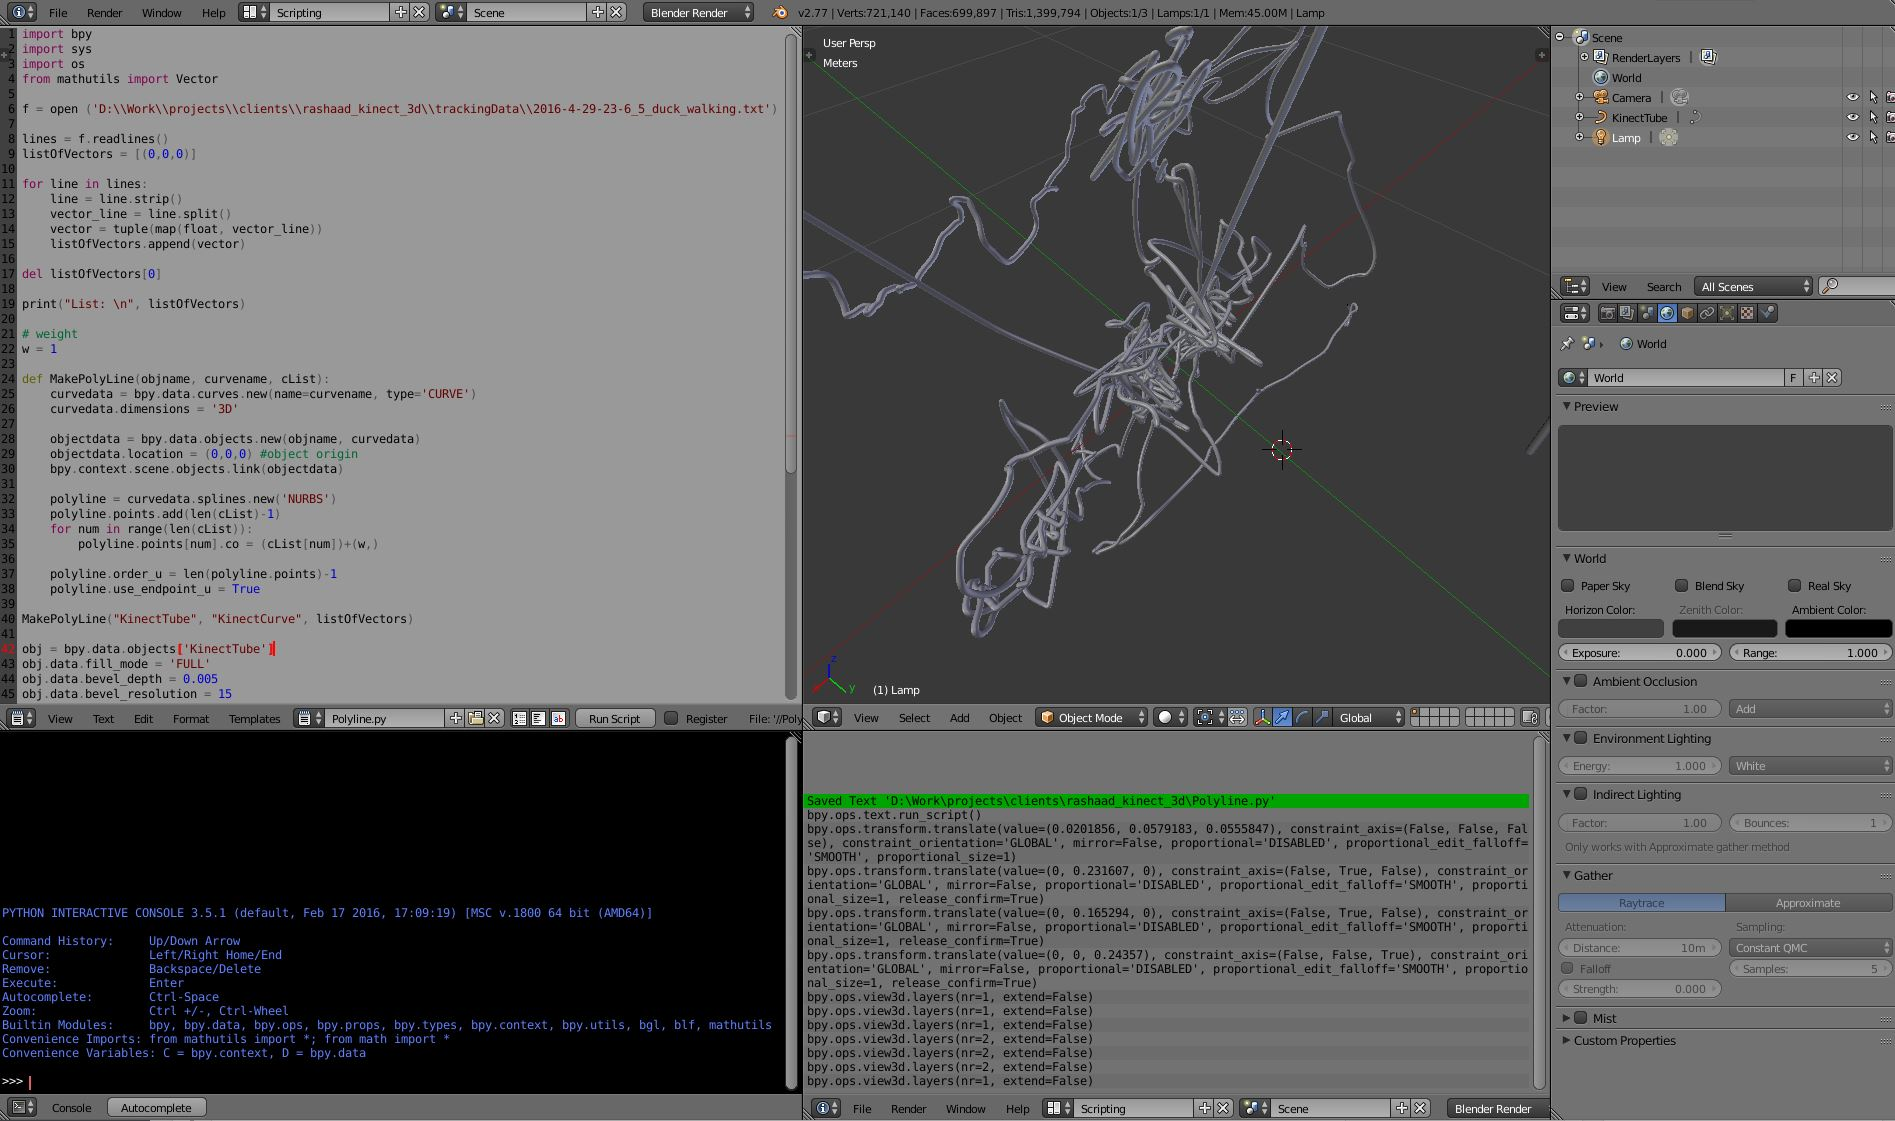 Running Python script in Blender to construct the 3D model from the captured data